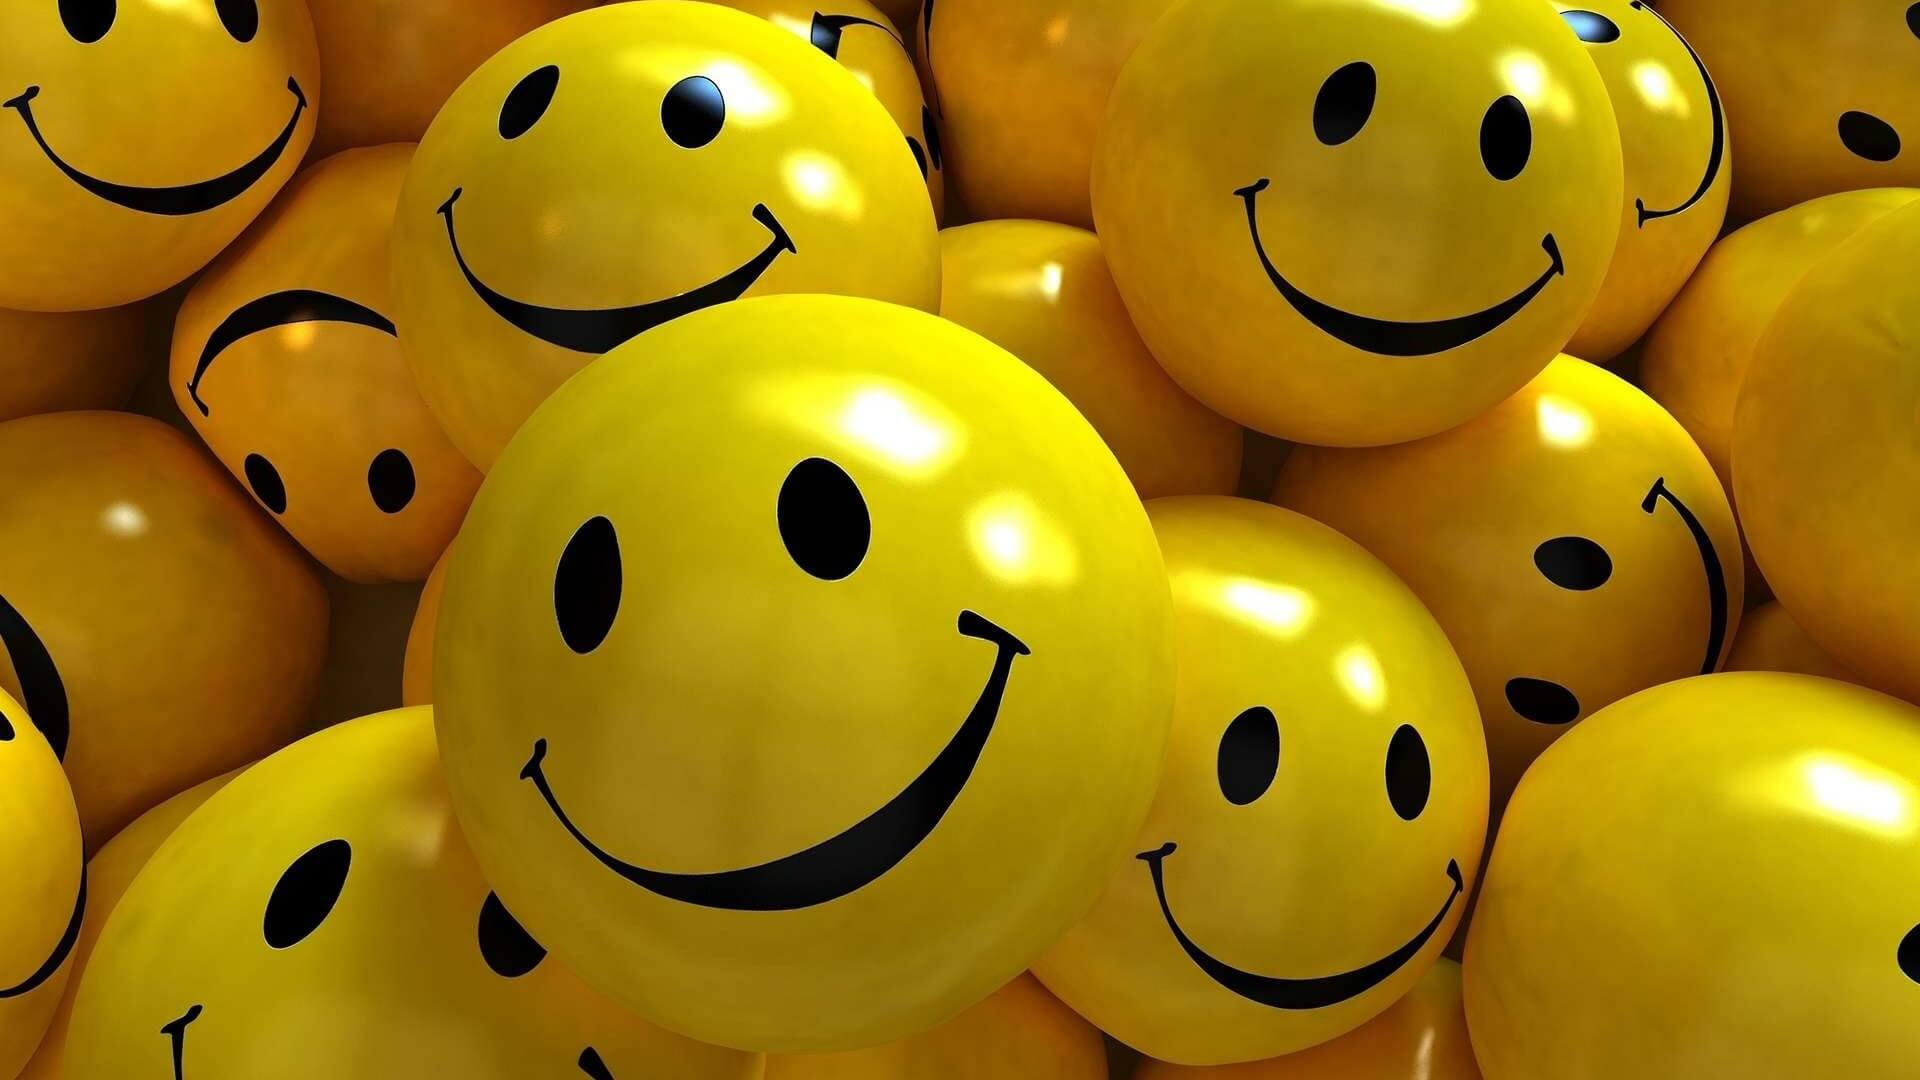 international day of happiness wallpaper smiley balls